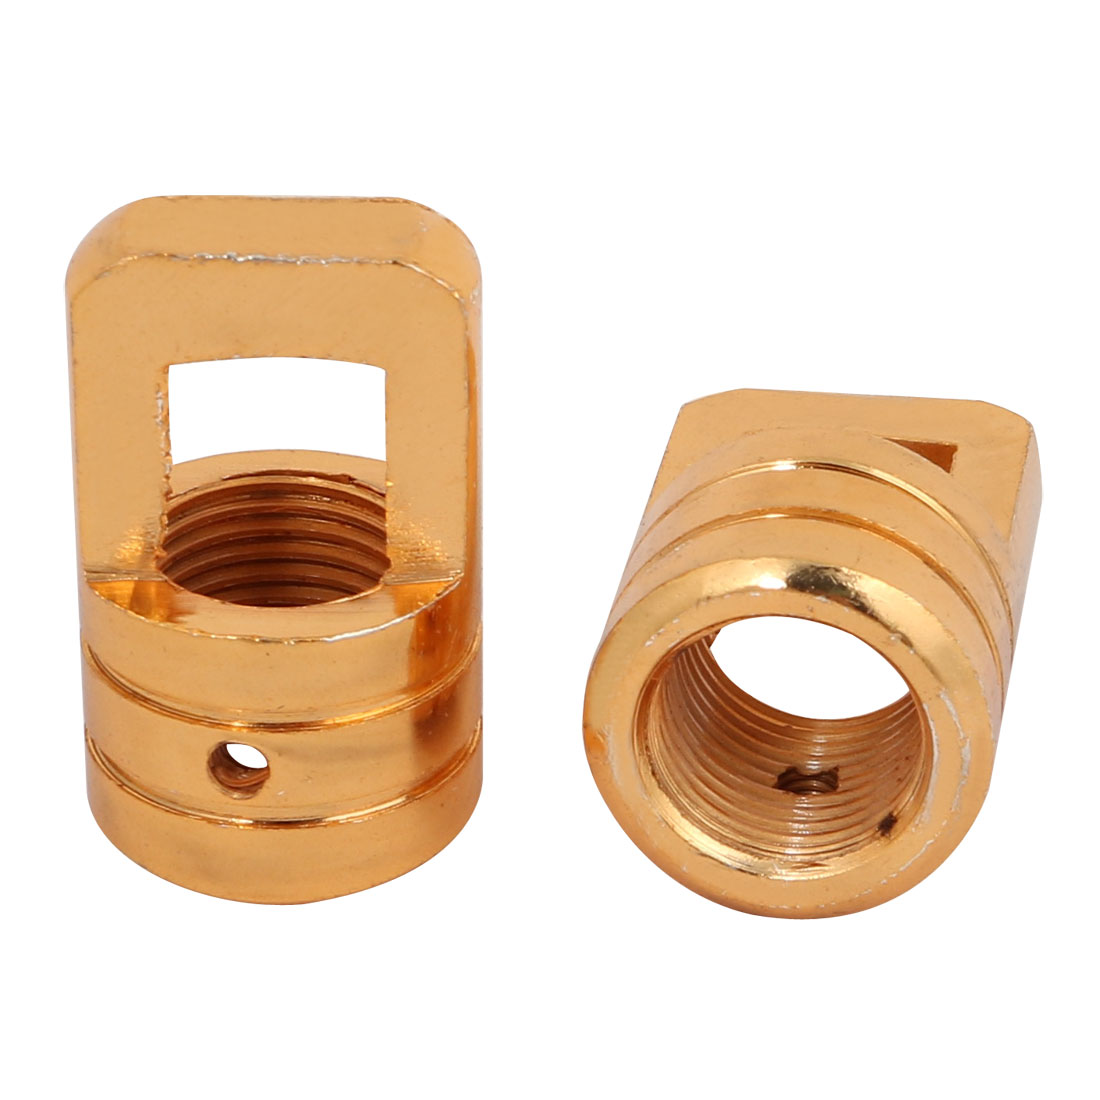 2pcs 23mm x 37mm M16 Female Thread Lamp Loop Ring Gold Tone for DIY Chandelier